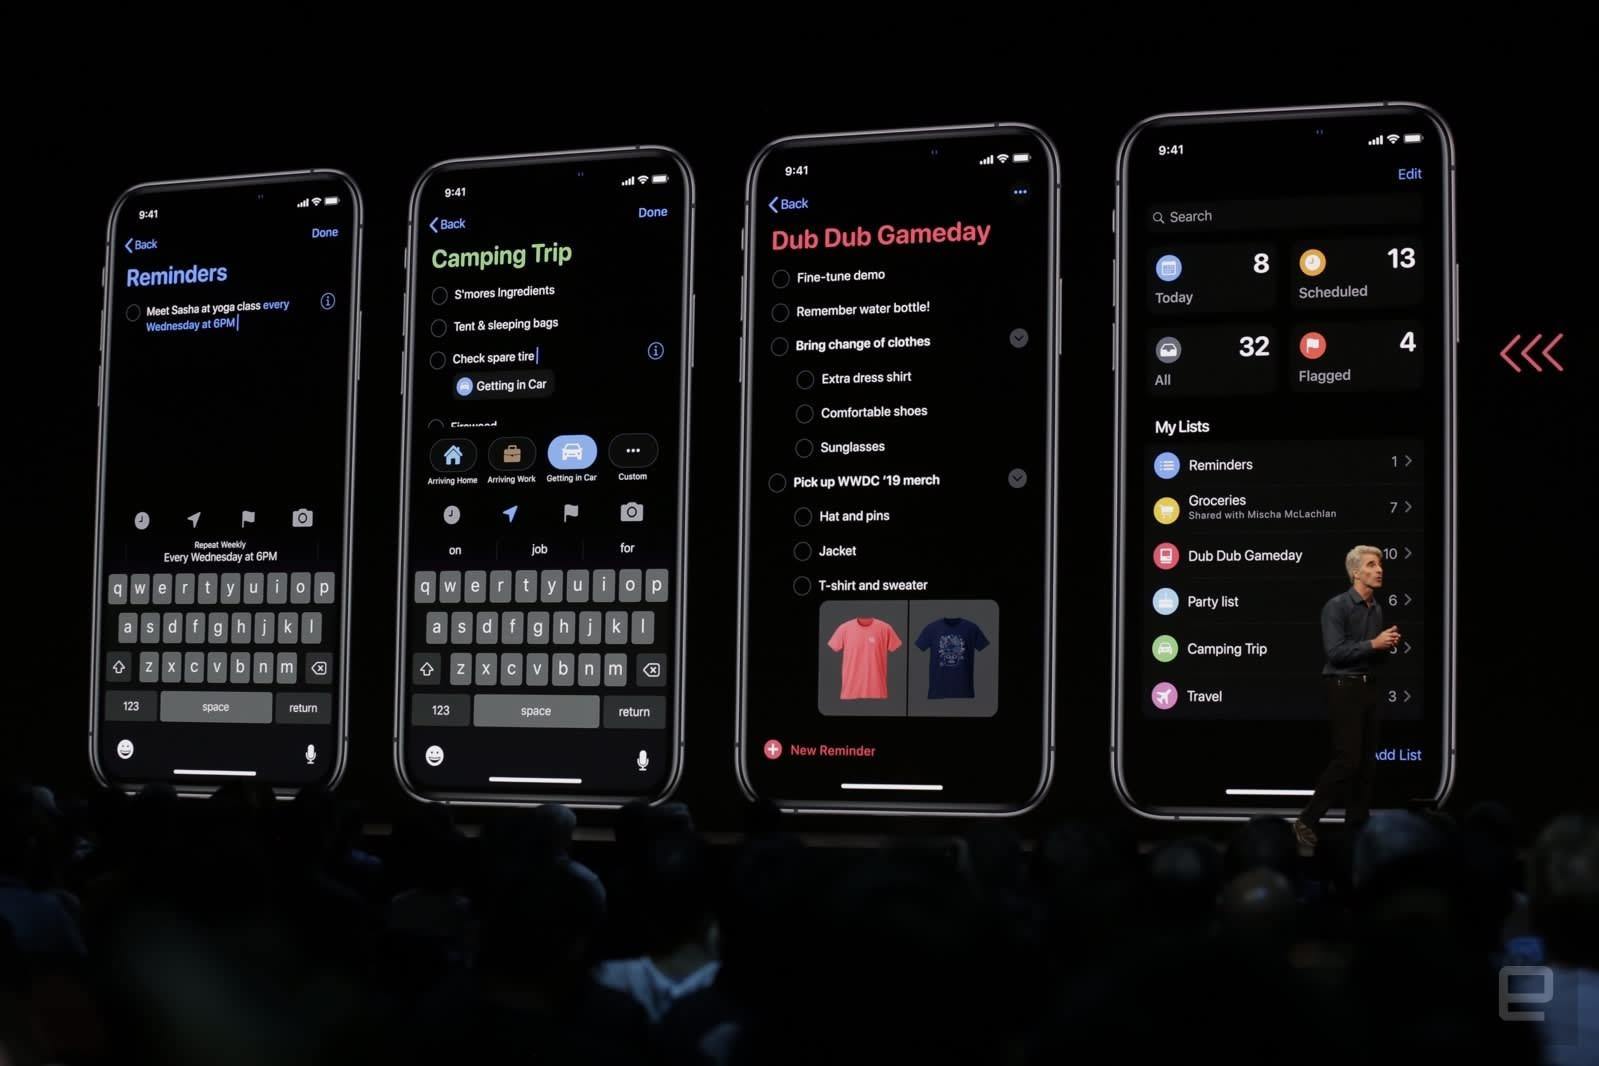 iOS 13 will be available on September 19th